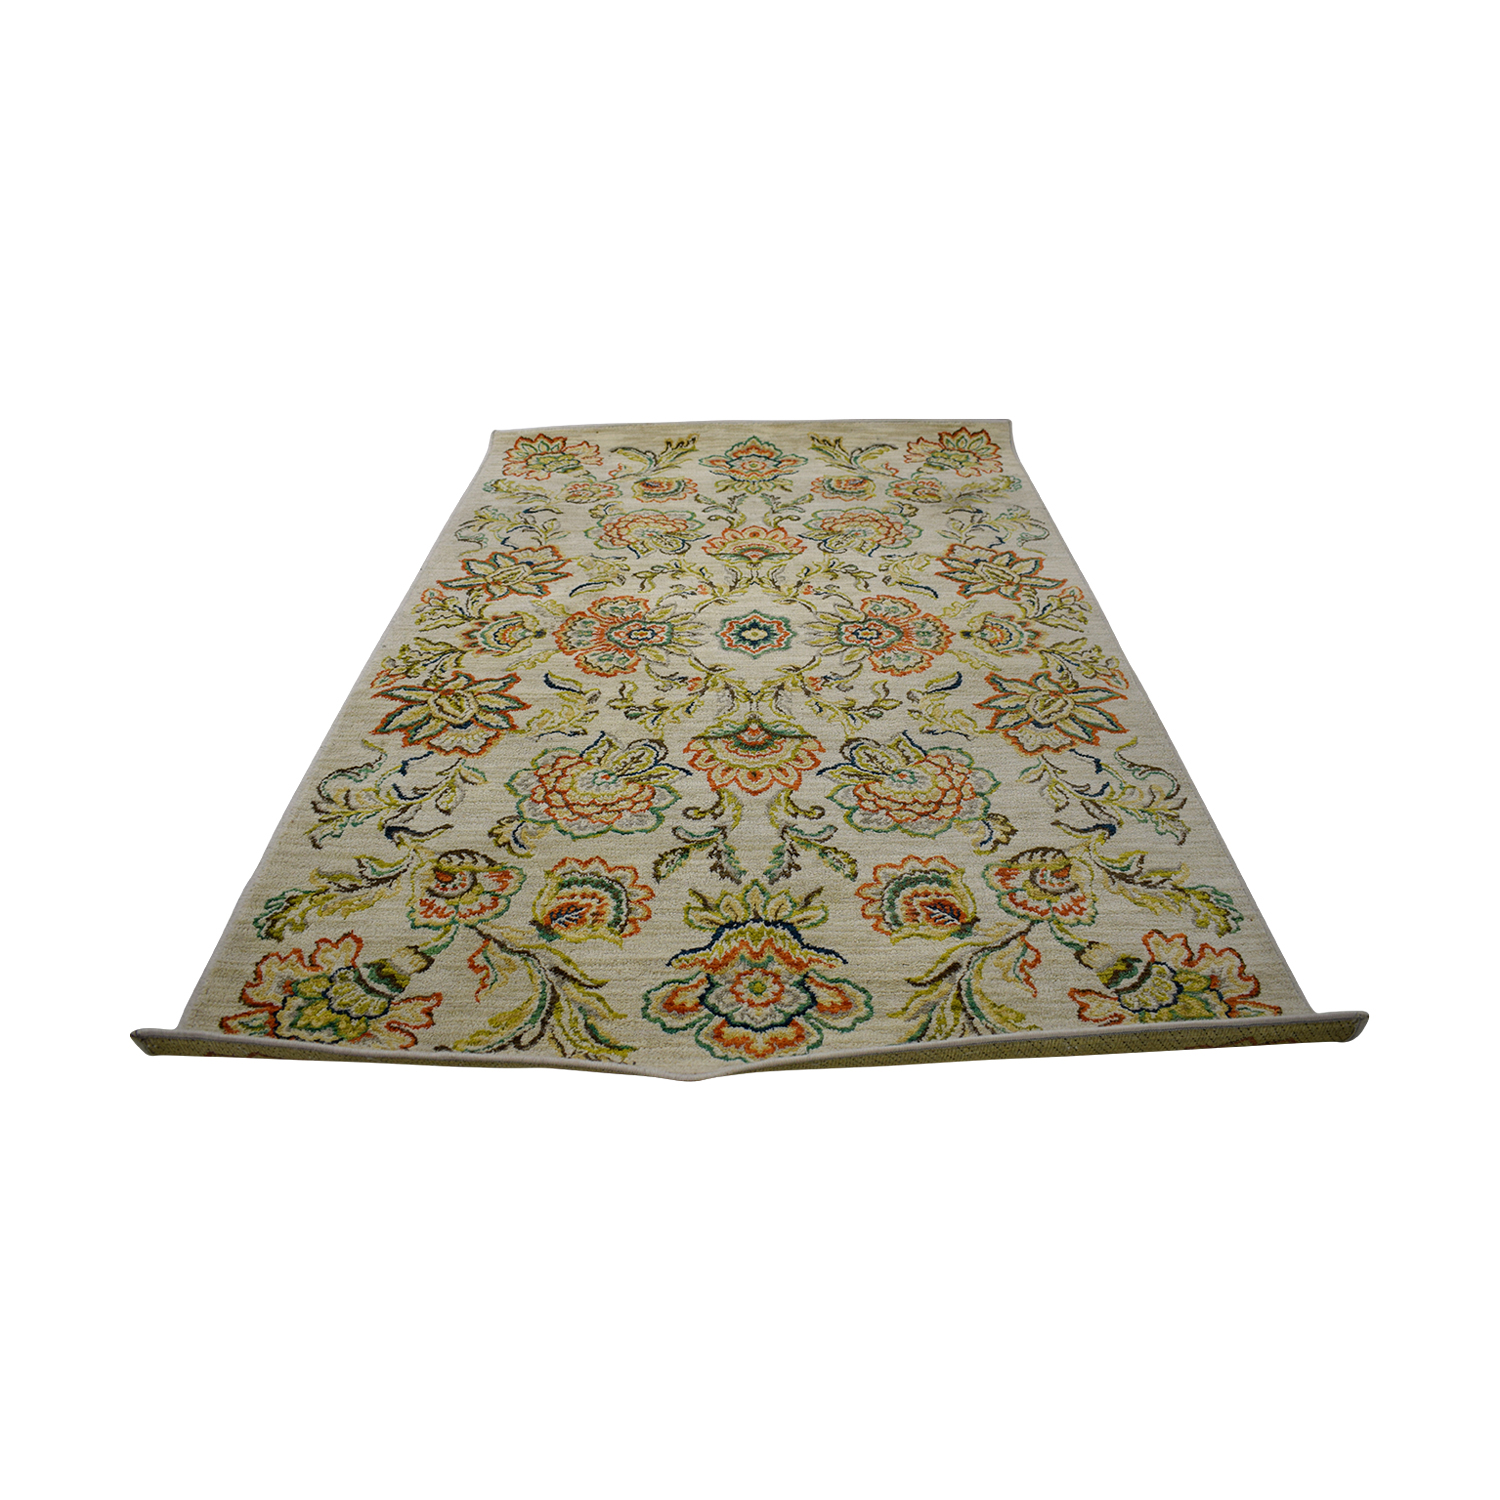 Wayfair Wayfair Beige Multi-Colored Floral Rug nyc